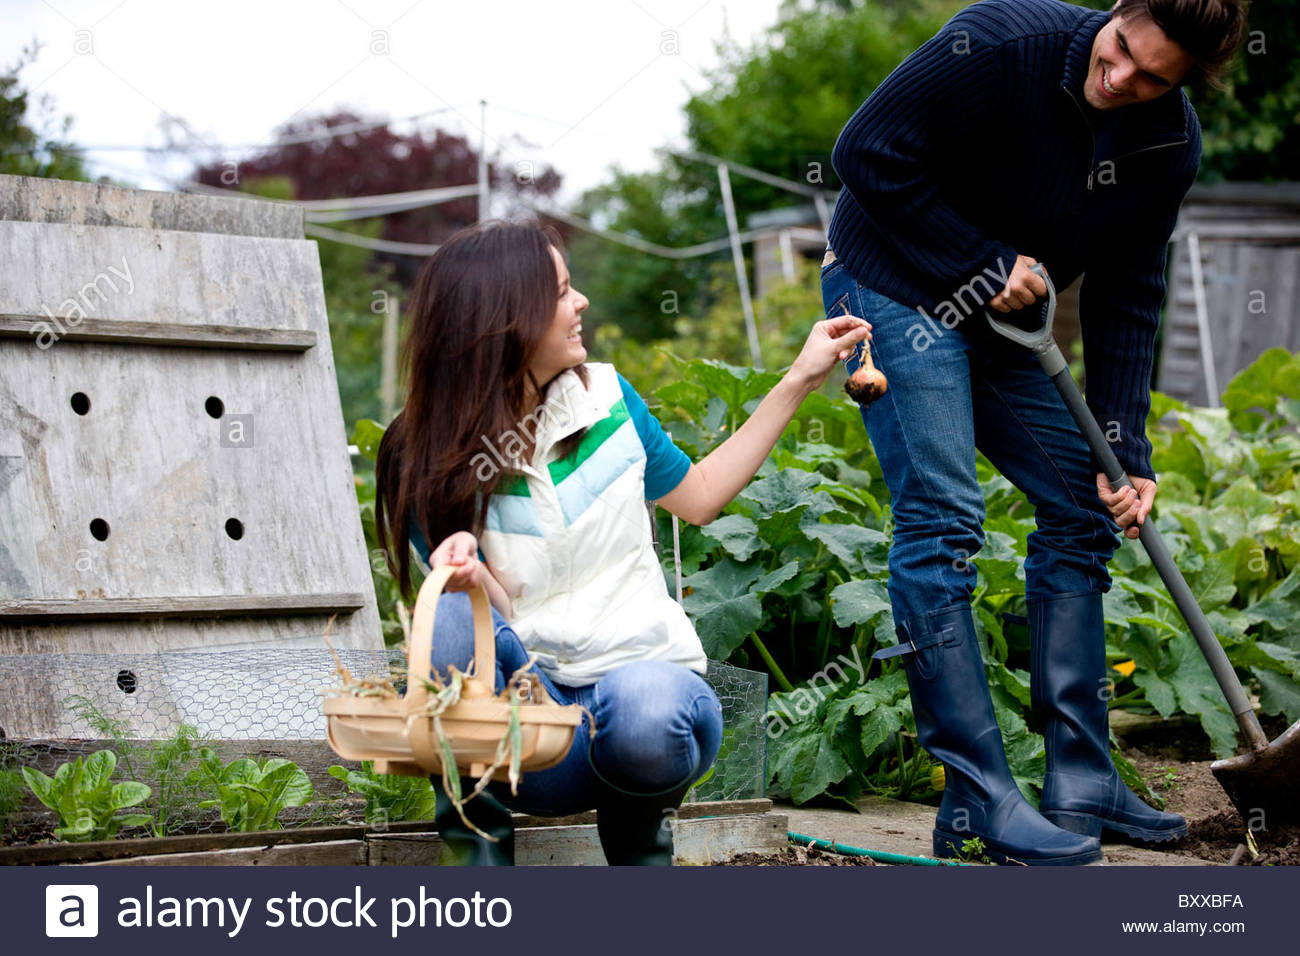 A young couple working on an allotment together - Stock Image